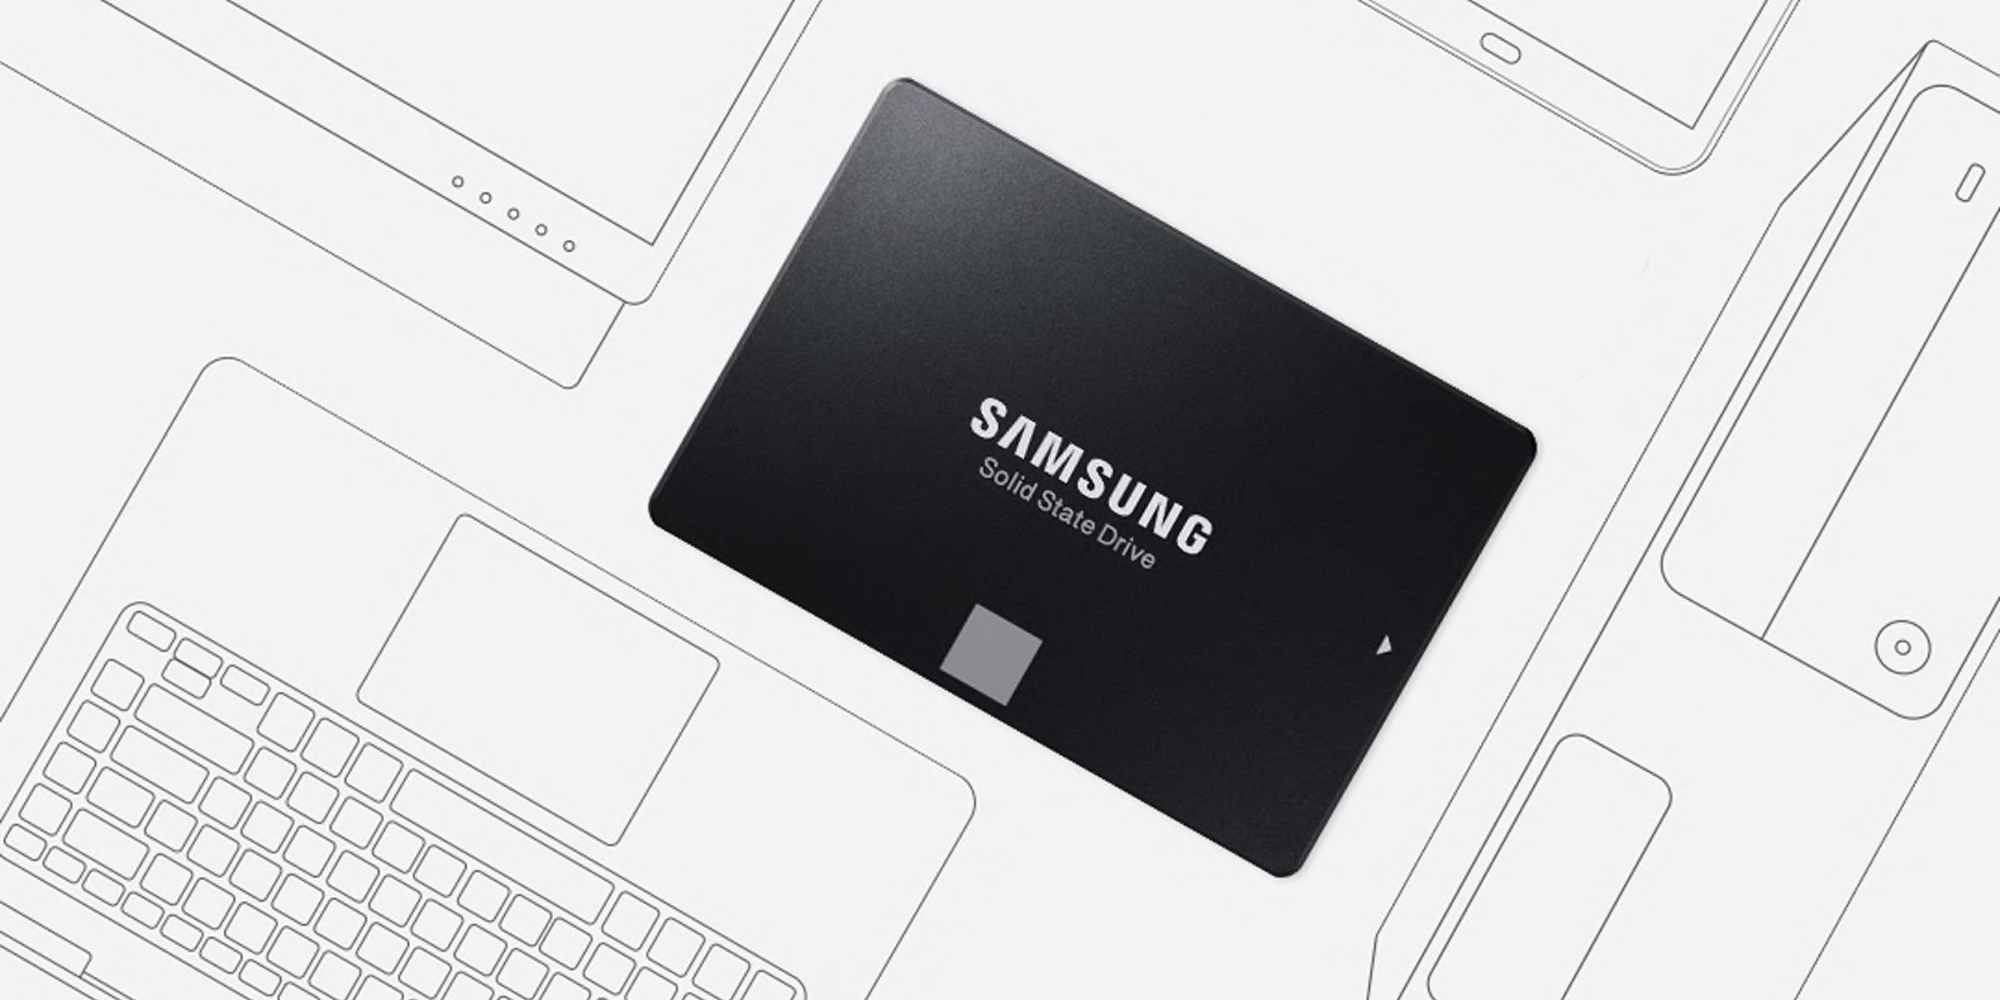 Give your computer a boost w/ Samsung's 500GB 860 EVO SSD at an Amazon low: $69 (Reg. $85)